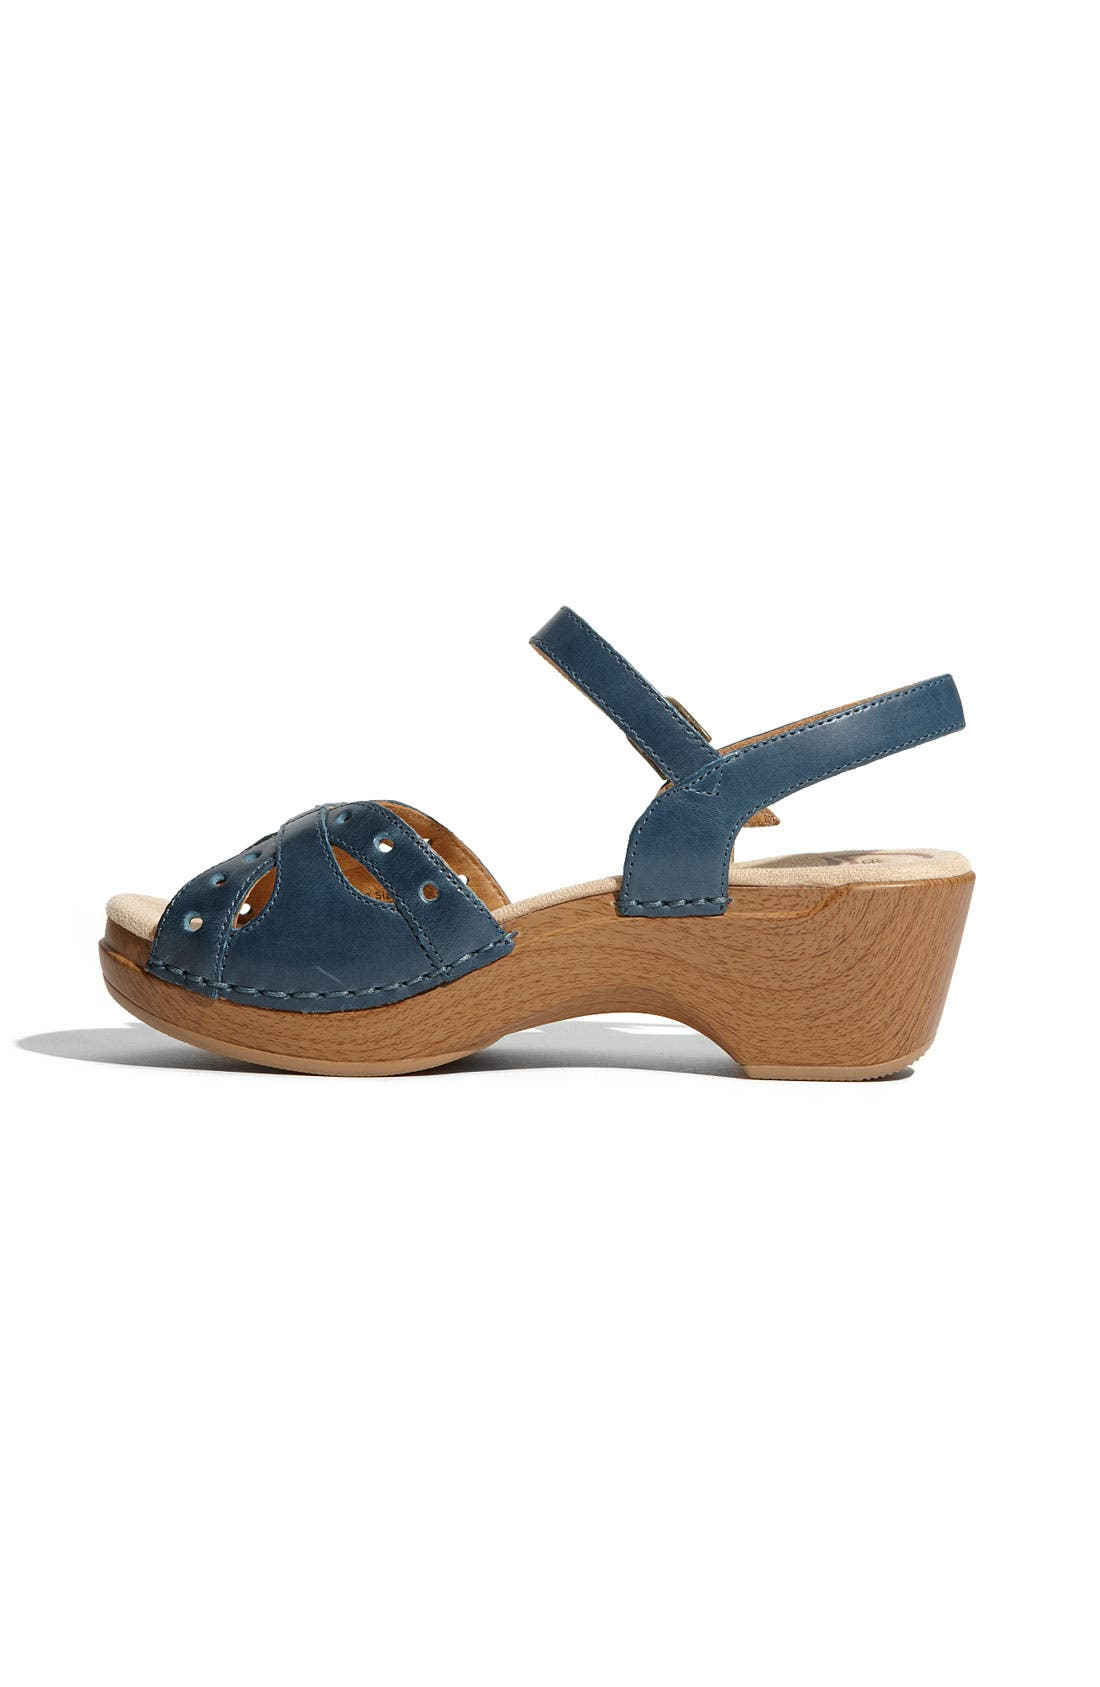 'Sissy' Sandal,                             Alternate thumbnail 2, color,                             400